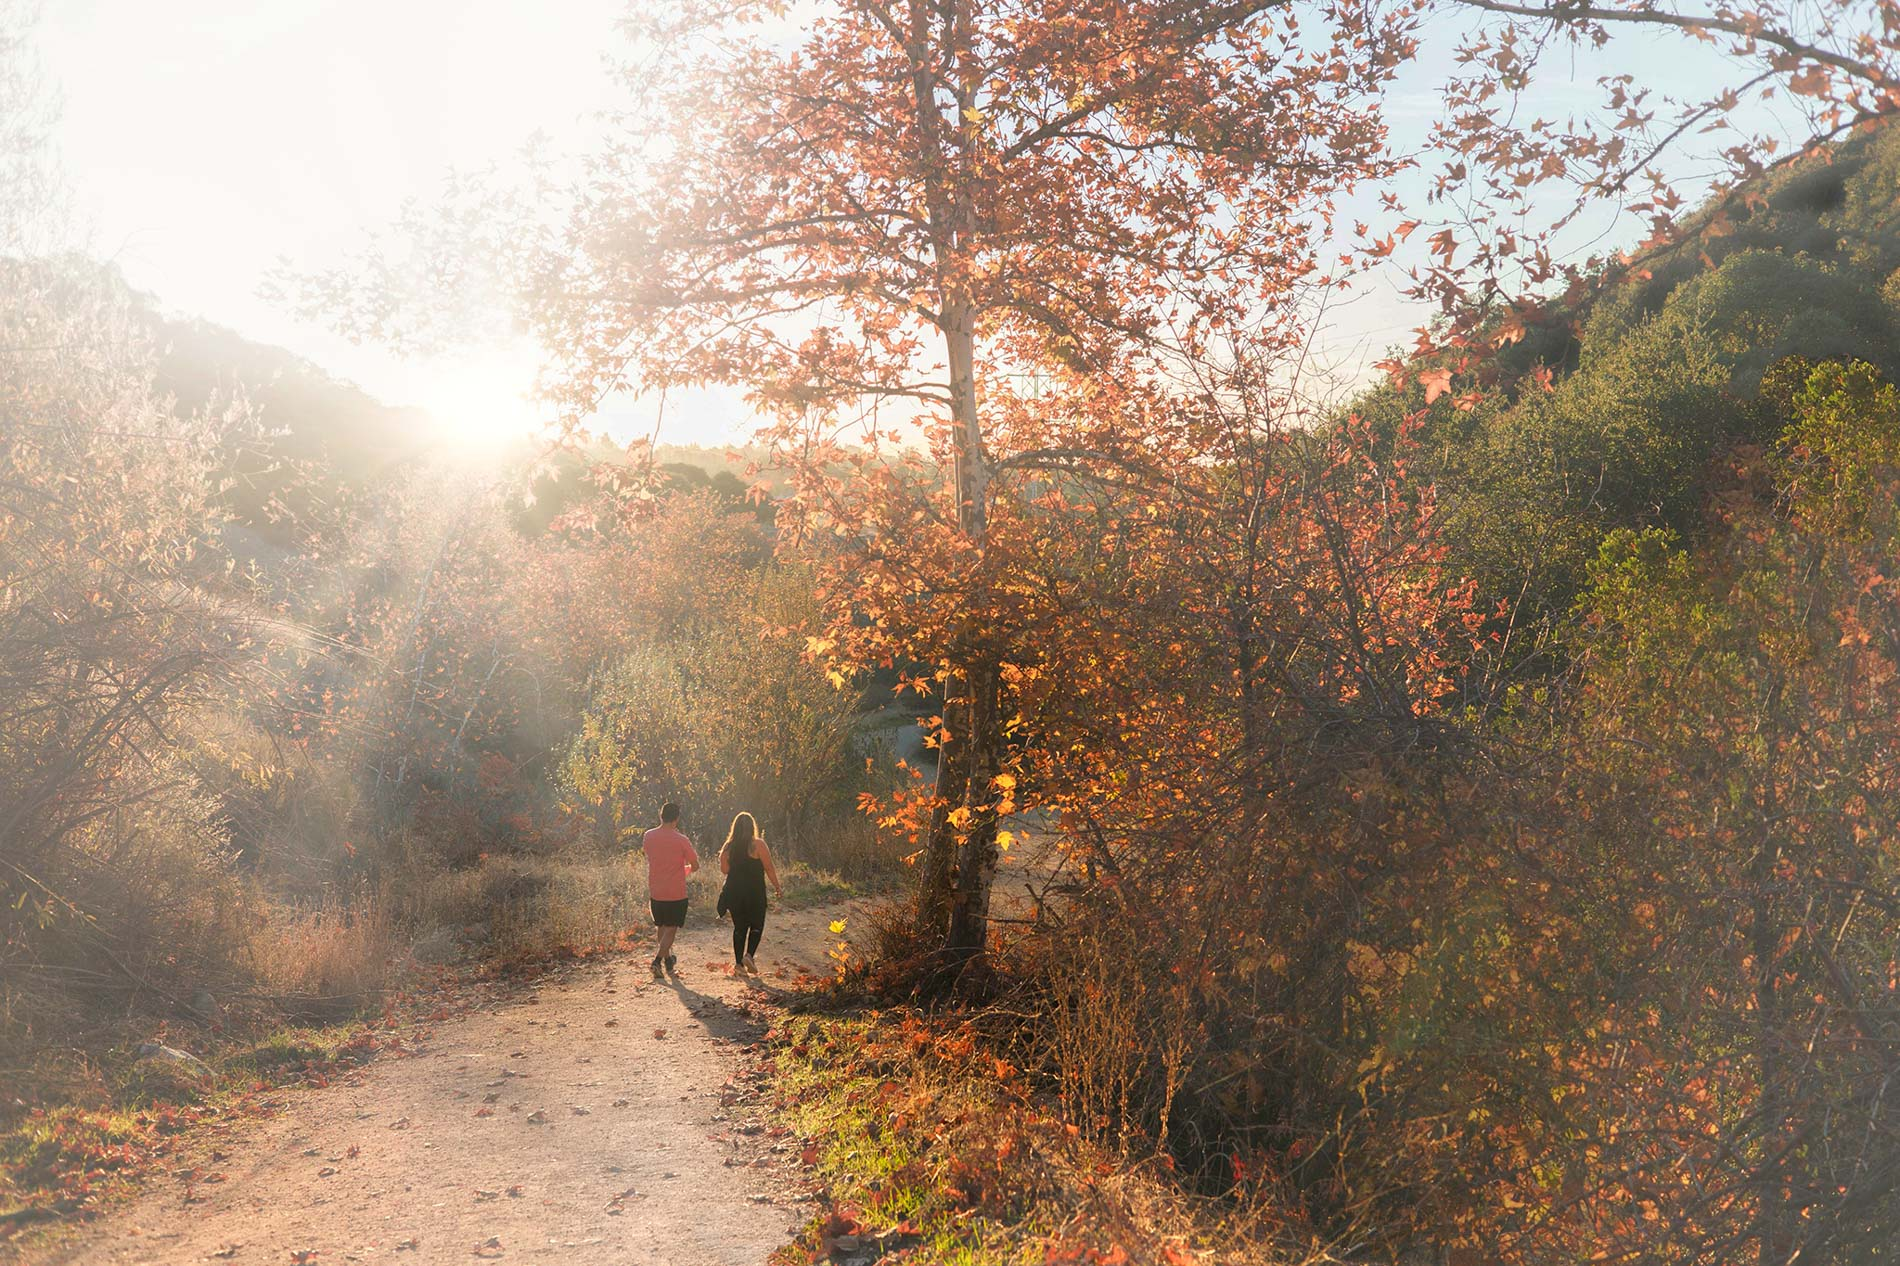 2 people walking on a trail under a warming sun